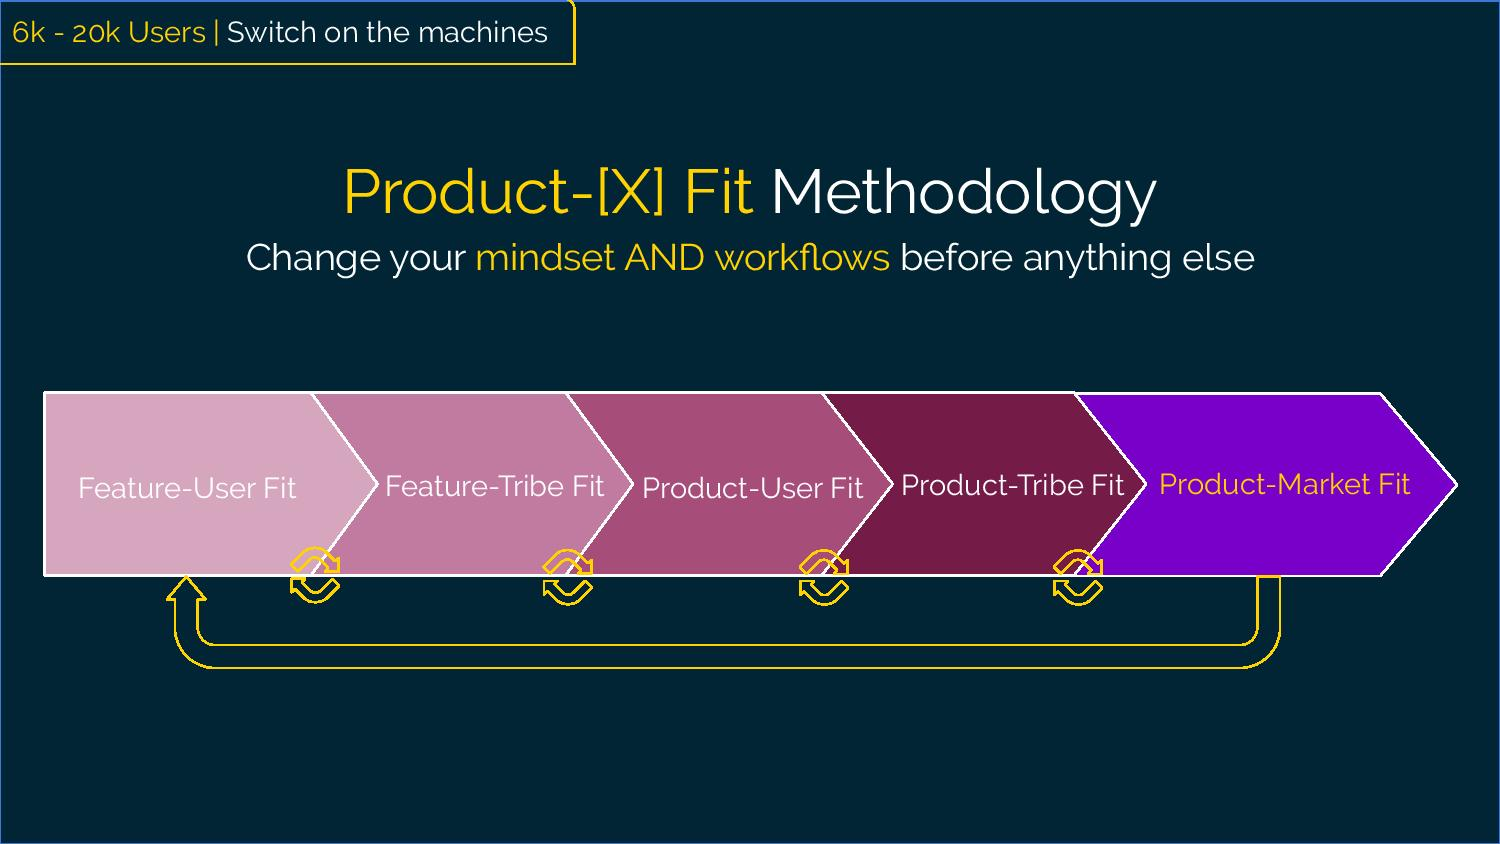 "5k to 20k users Product-[X] Fit Methodology ""Change your mindset and workflows before anything else.""  [Workflow depiction] Feature-User Fit to  Feature-Tribe Fit to  Product-User Fit to  Product-Tribe Fit to Product-Market Fit"